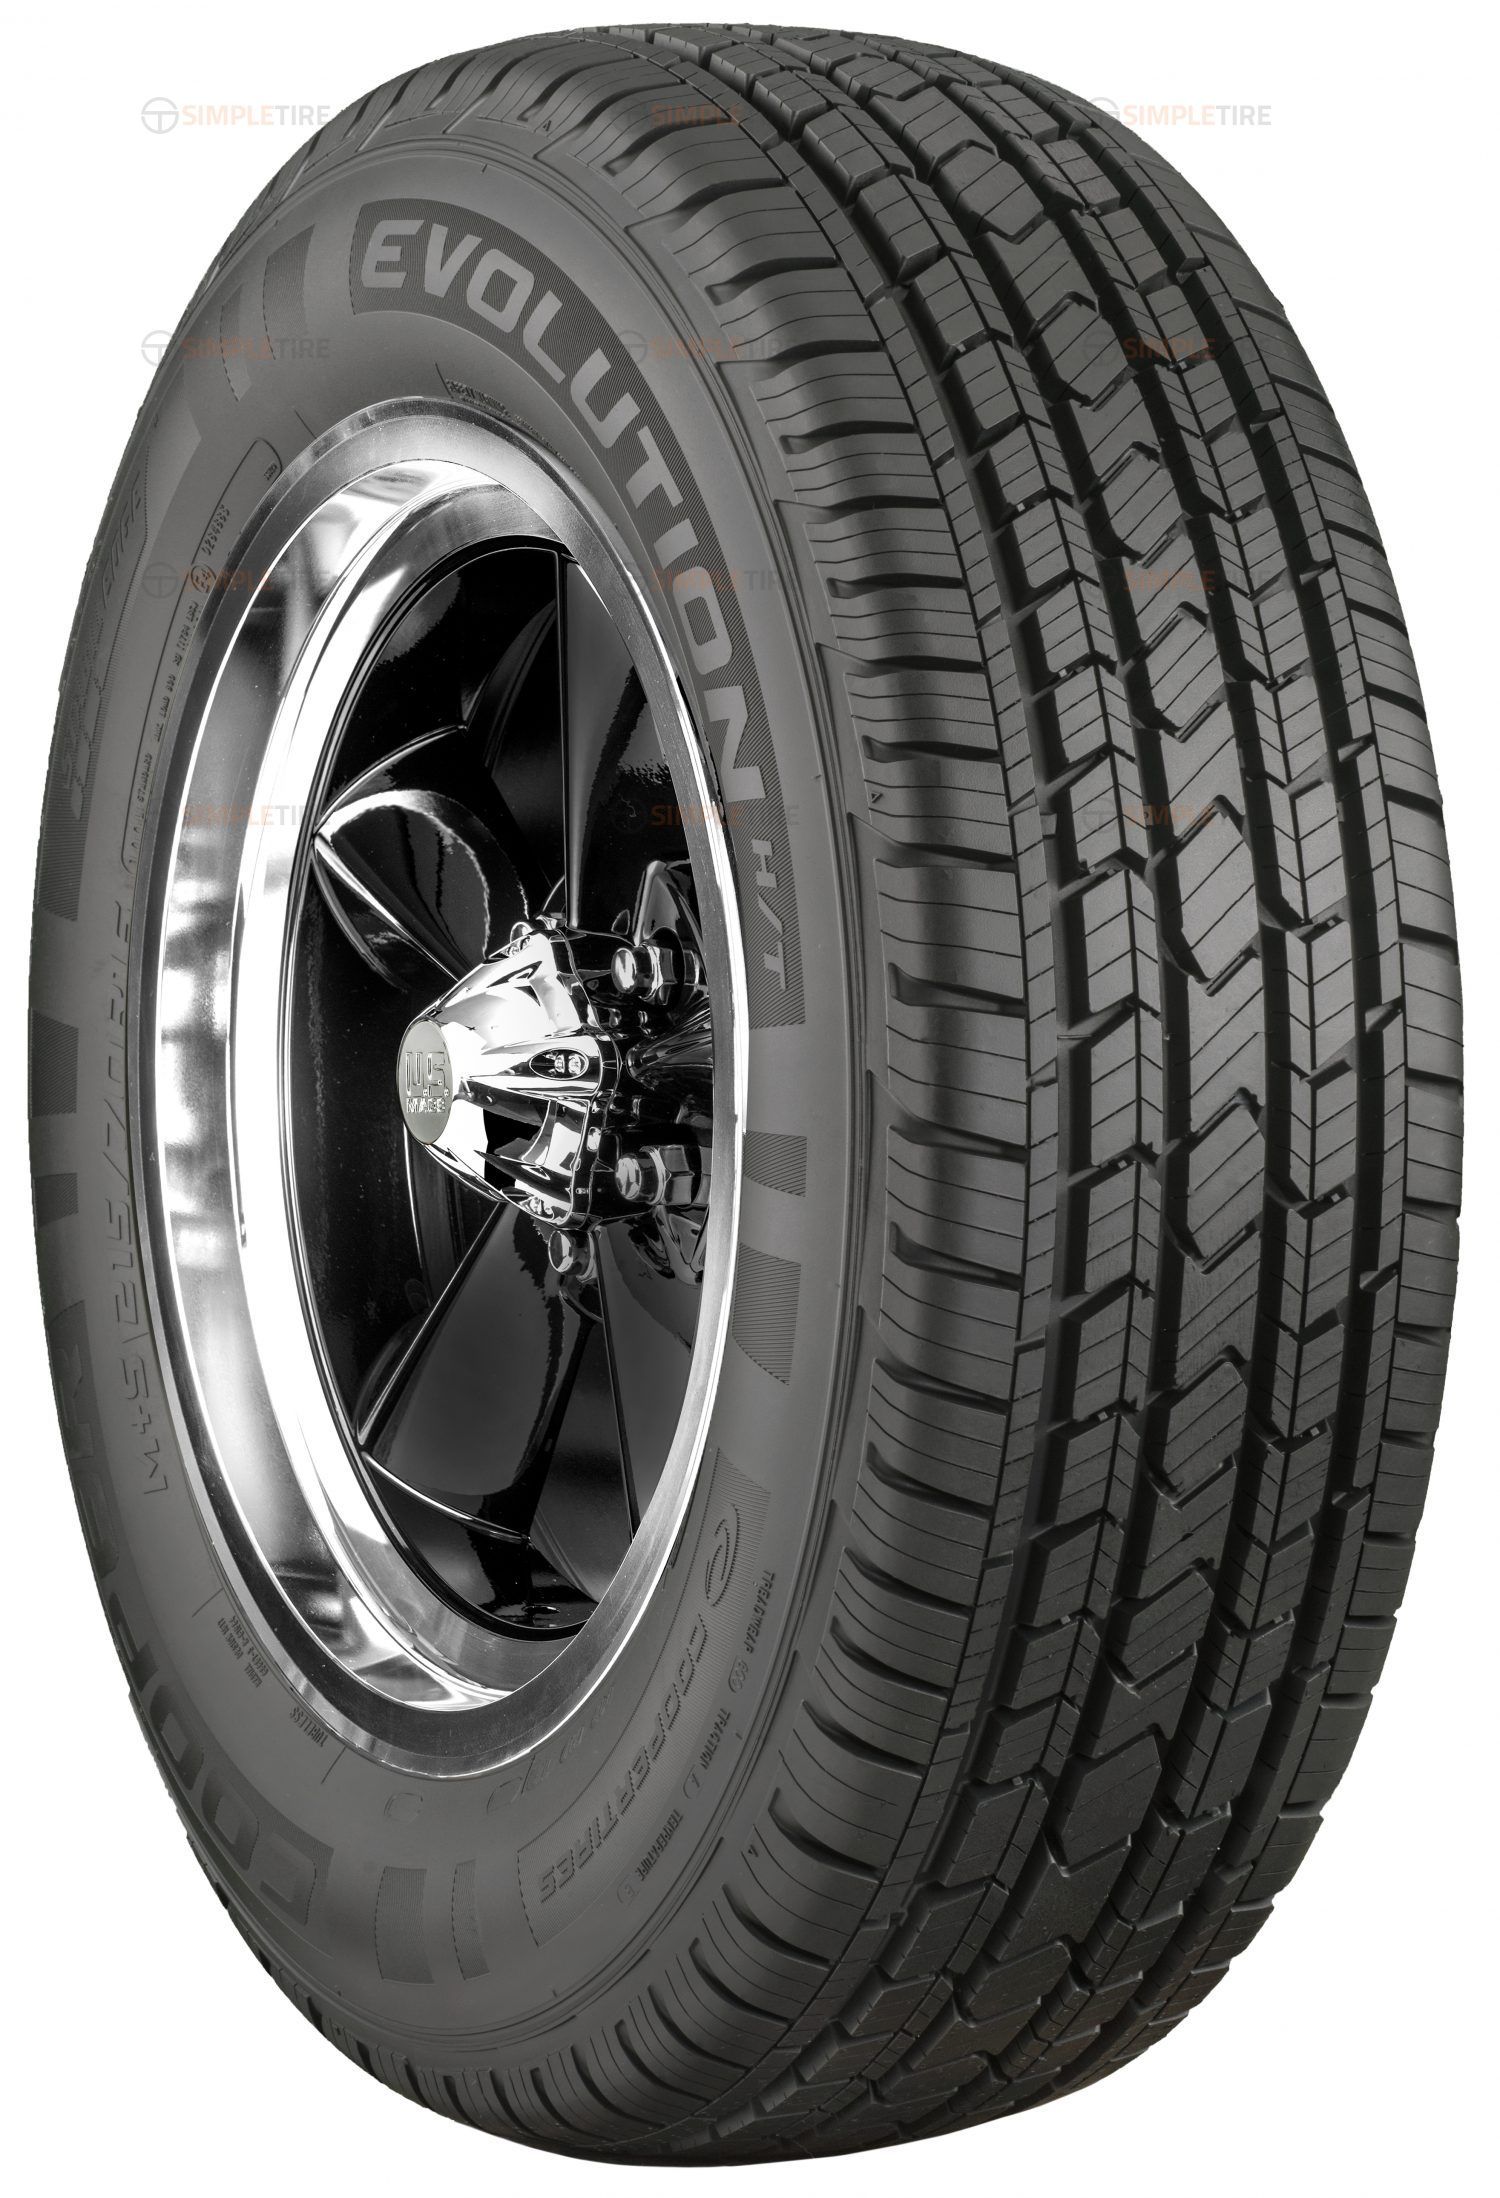 90000029116 265/70R18 Evolution HT Cooper